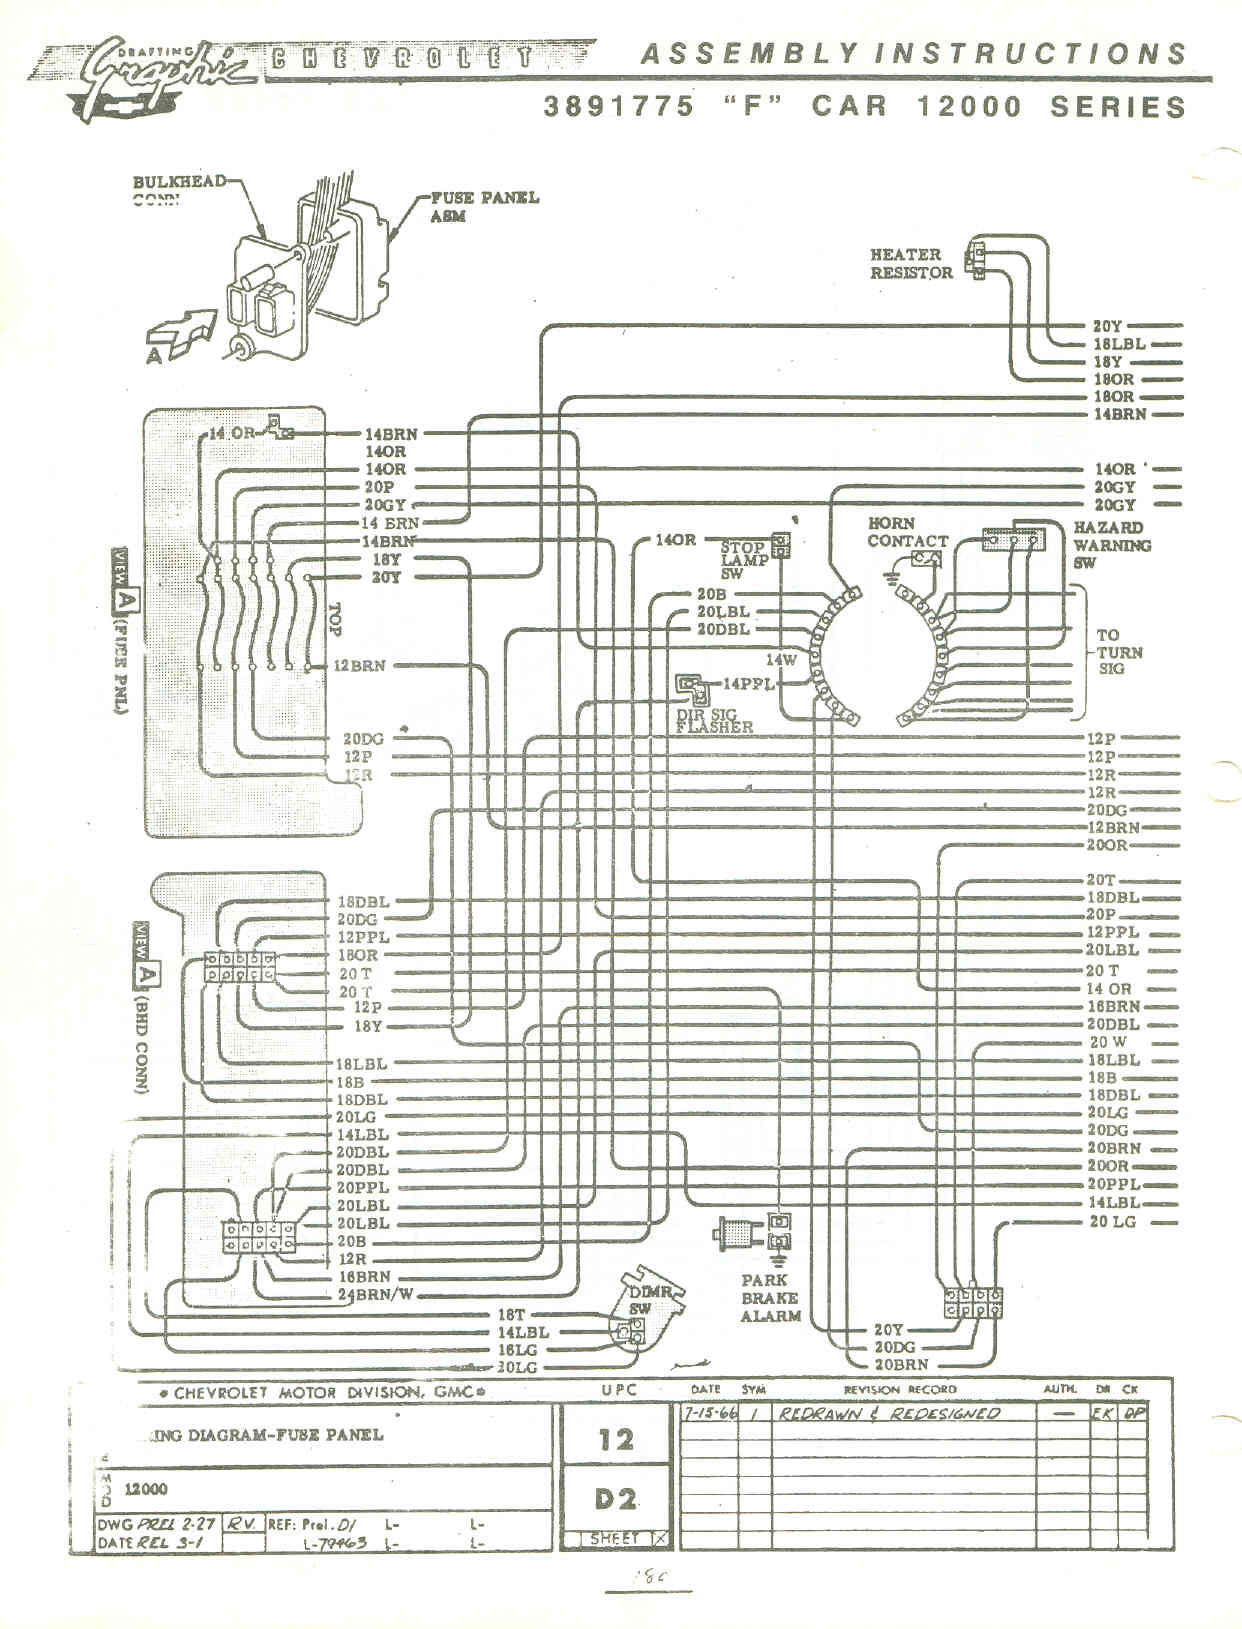 1967 Chevelle Wiring Diagram Pdf Library Gtx Click Image For Larger Version Name 67 2 Views 3771